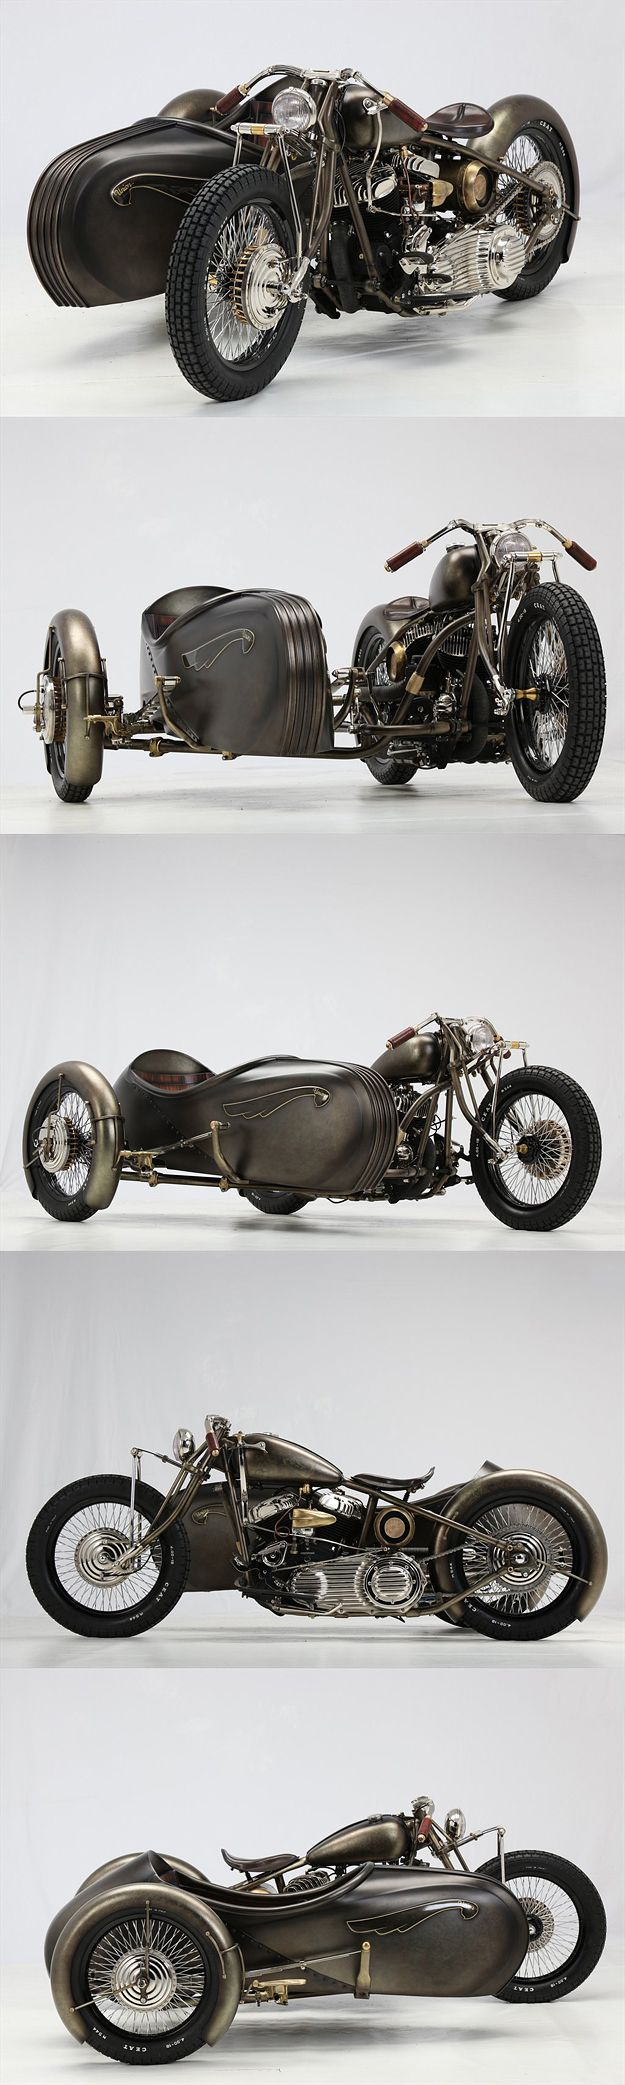 Best 25+ Sidecar ideas on Pinterest | Motorcycle with sidecar ...